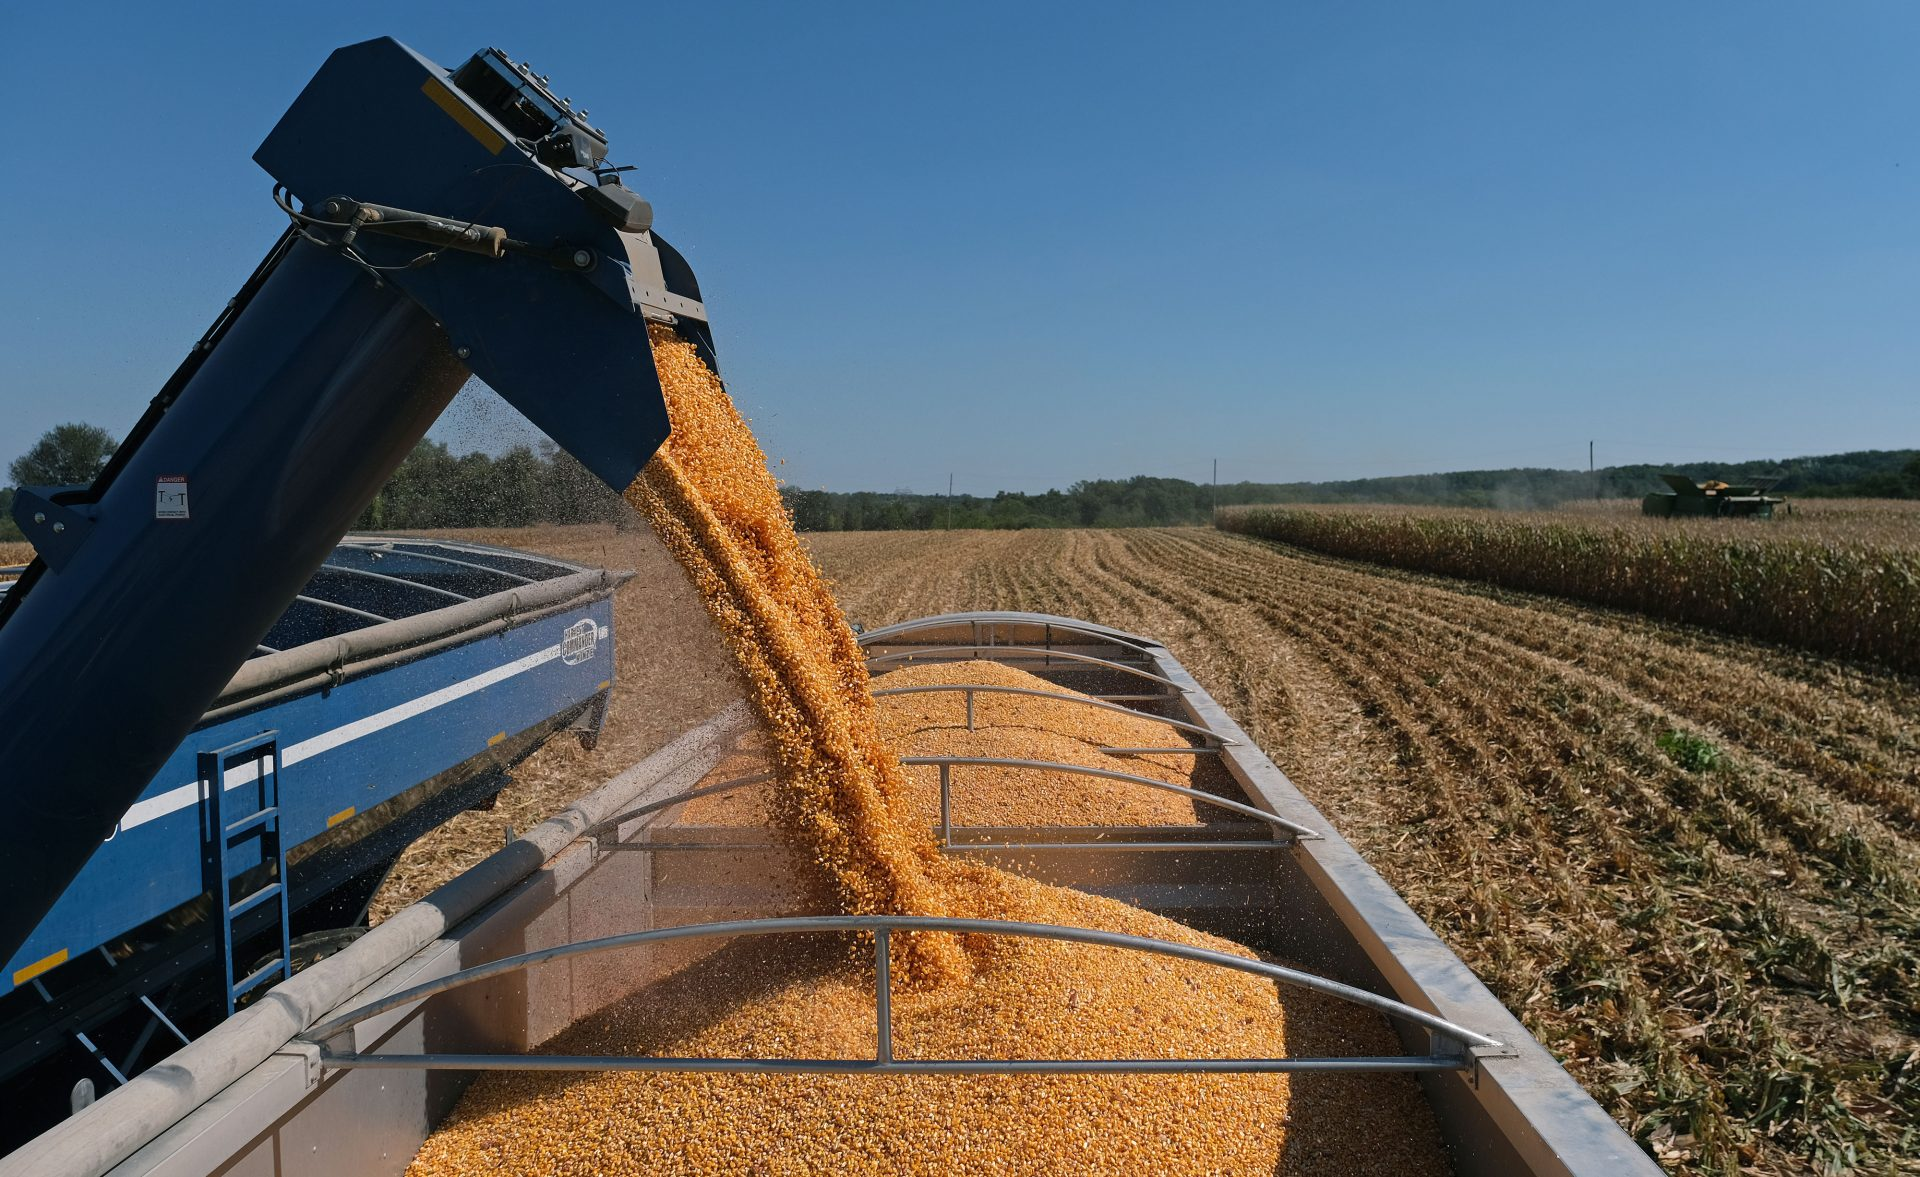 Harvested corn is unloaded into a truck Sept. 25, 2019, at Cairns Family Farm in Sadsbury Township, Pennsylvania.